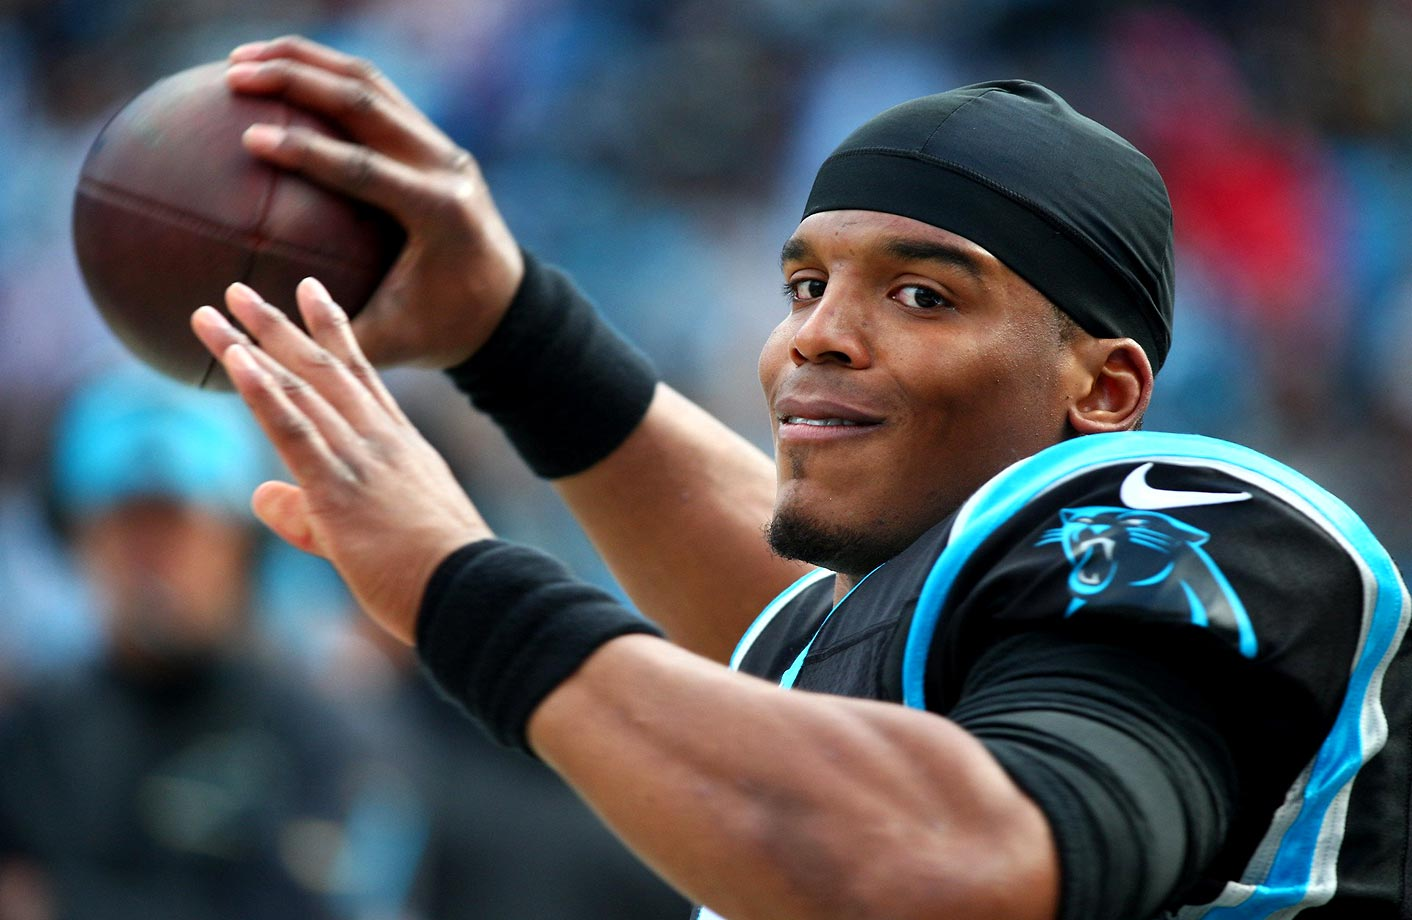 Cam Newton threw 35 touchdown passes during the 2015 regular season and was intercepted 10 times.                                                               Text credit: Daniel Hersh